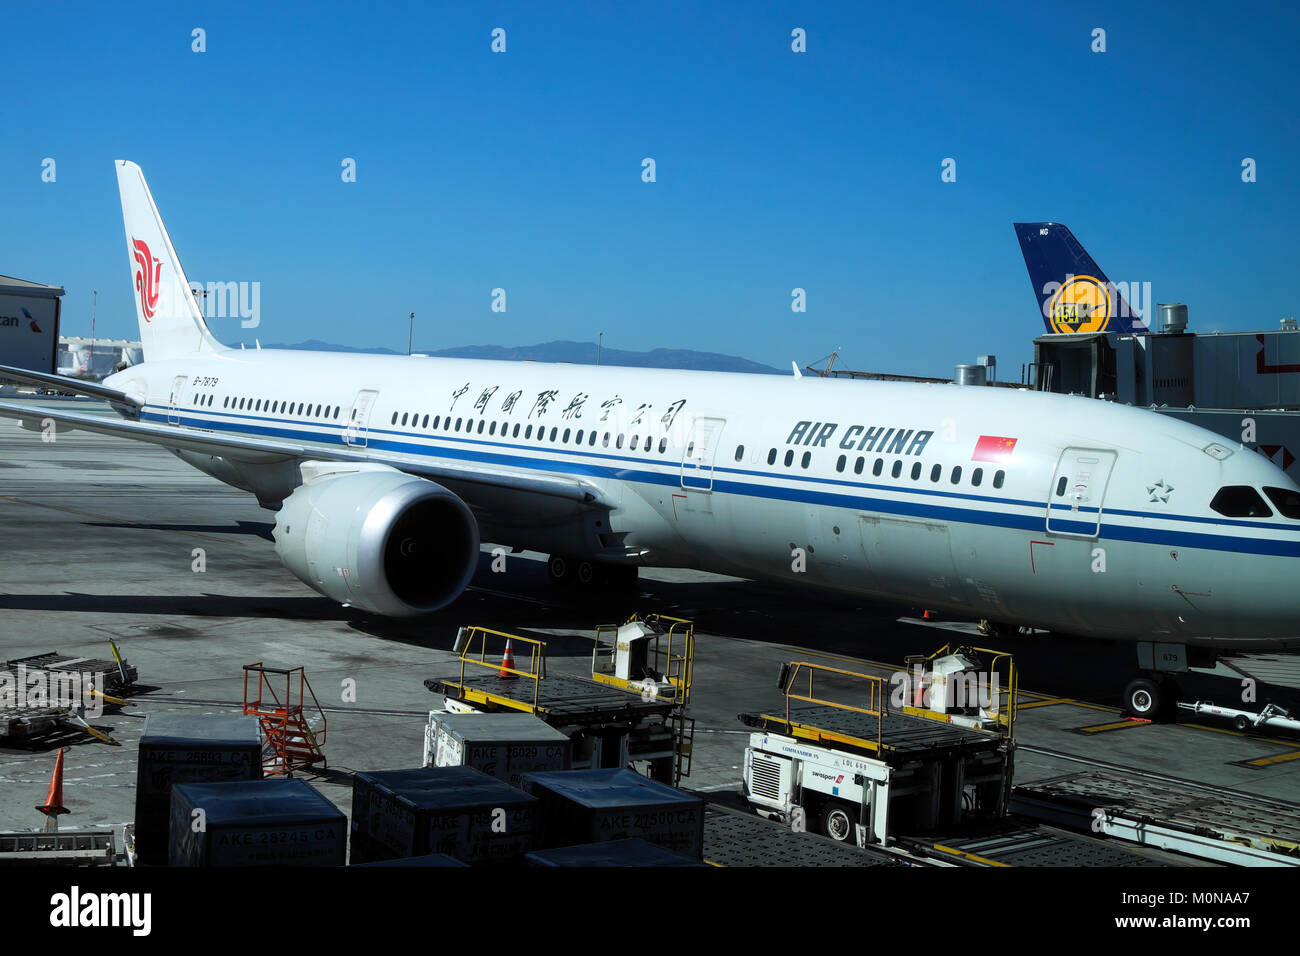 Air China Airlines plane standing on the tarmac being serviced prior to takeoff at LAX airport Los Angeles, California - Stock Image